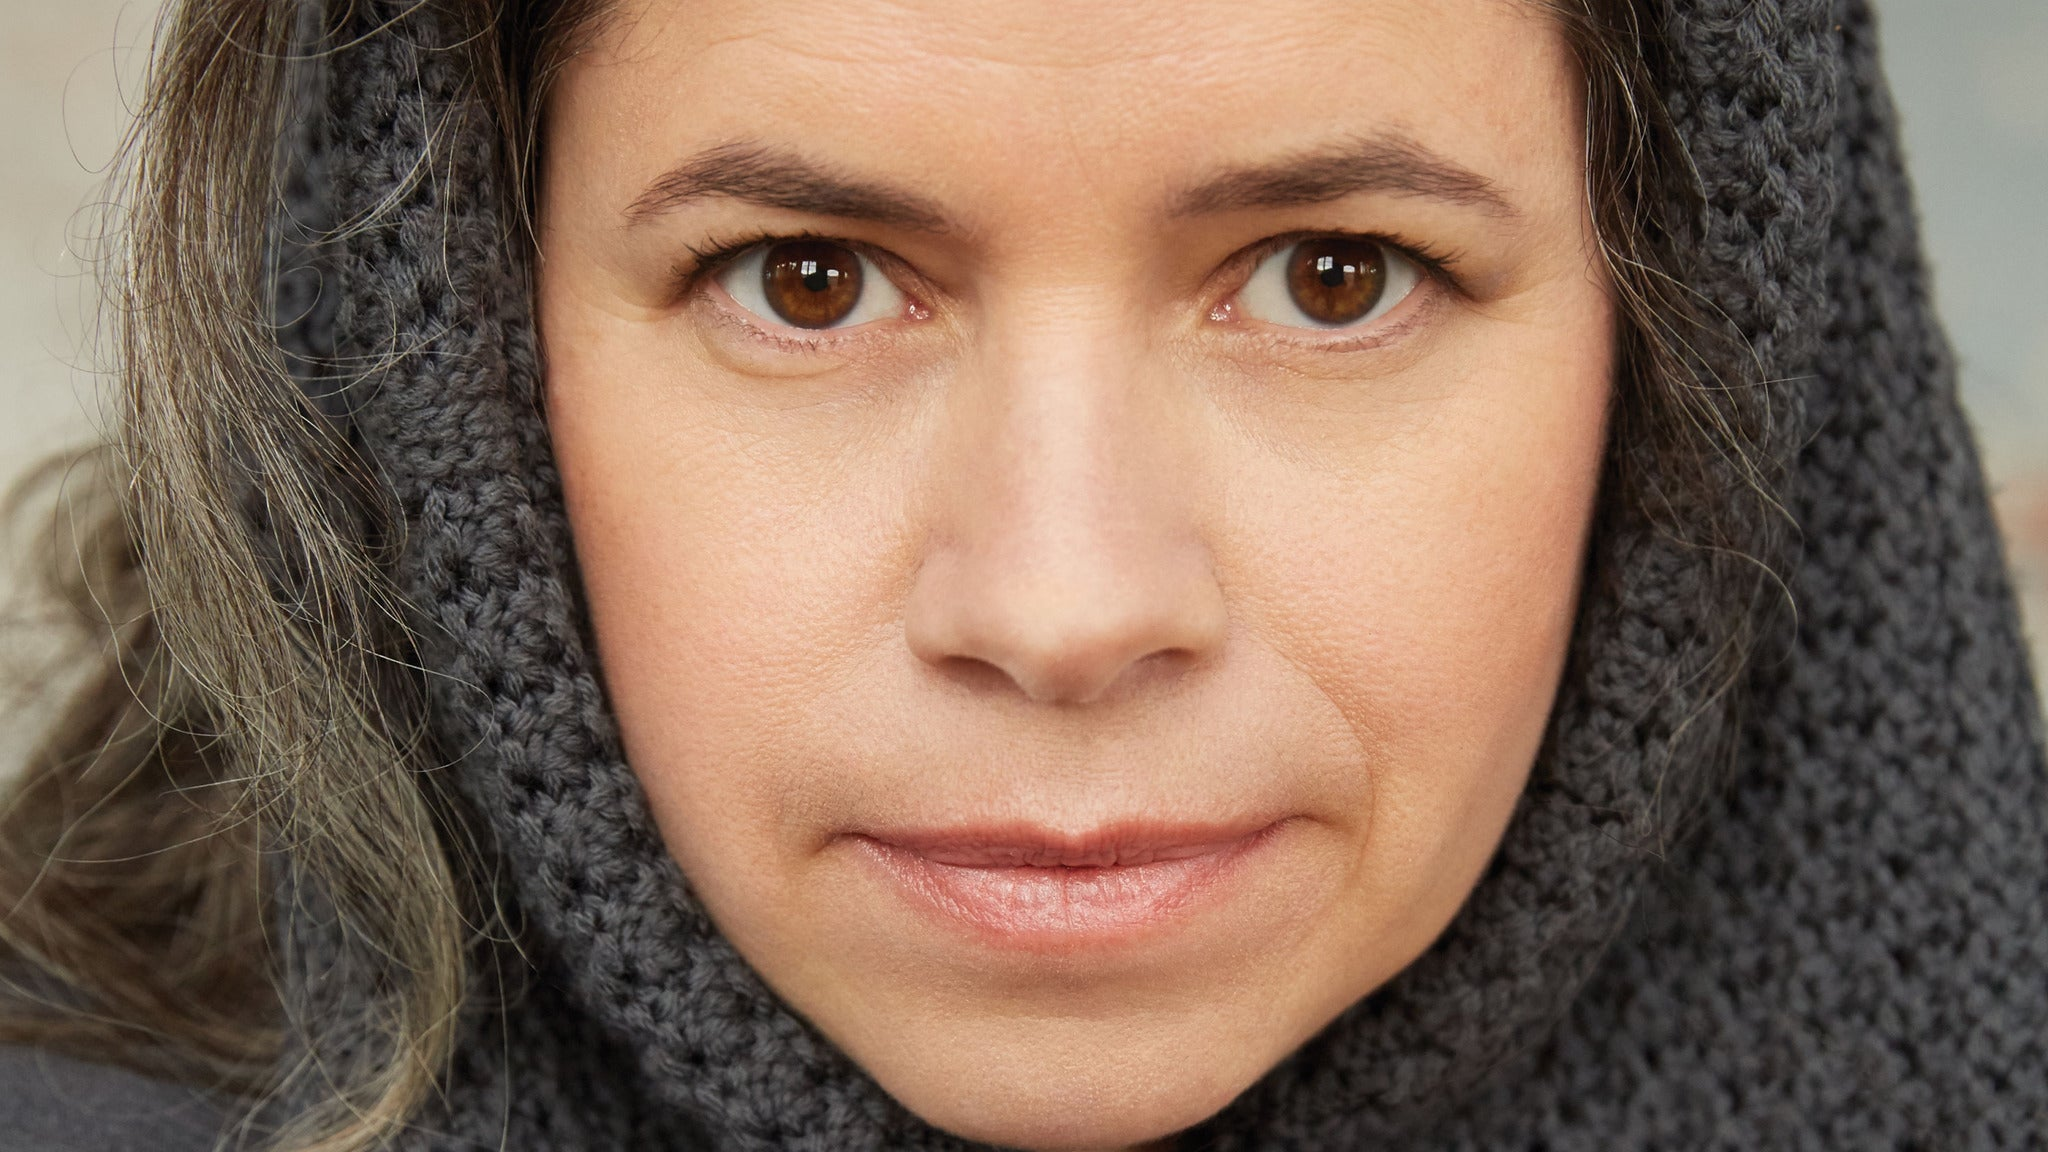 Natalie Merchant: Summer Tour 2017- 3 Decades of Song